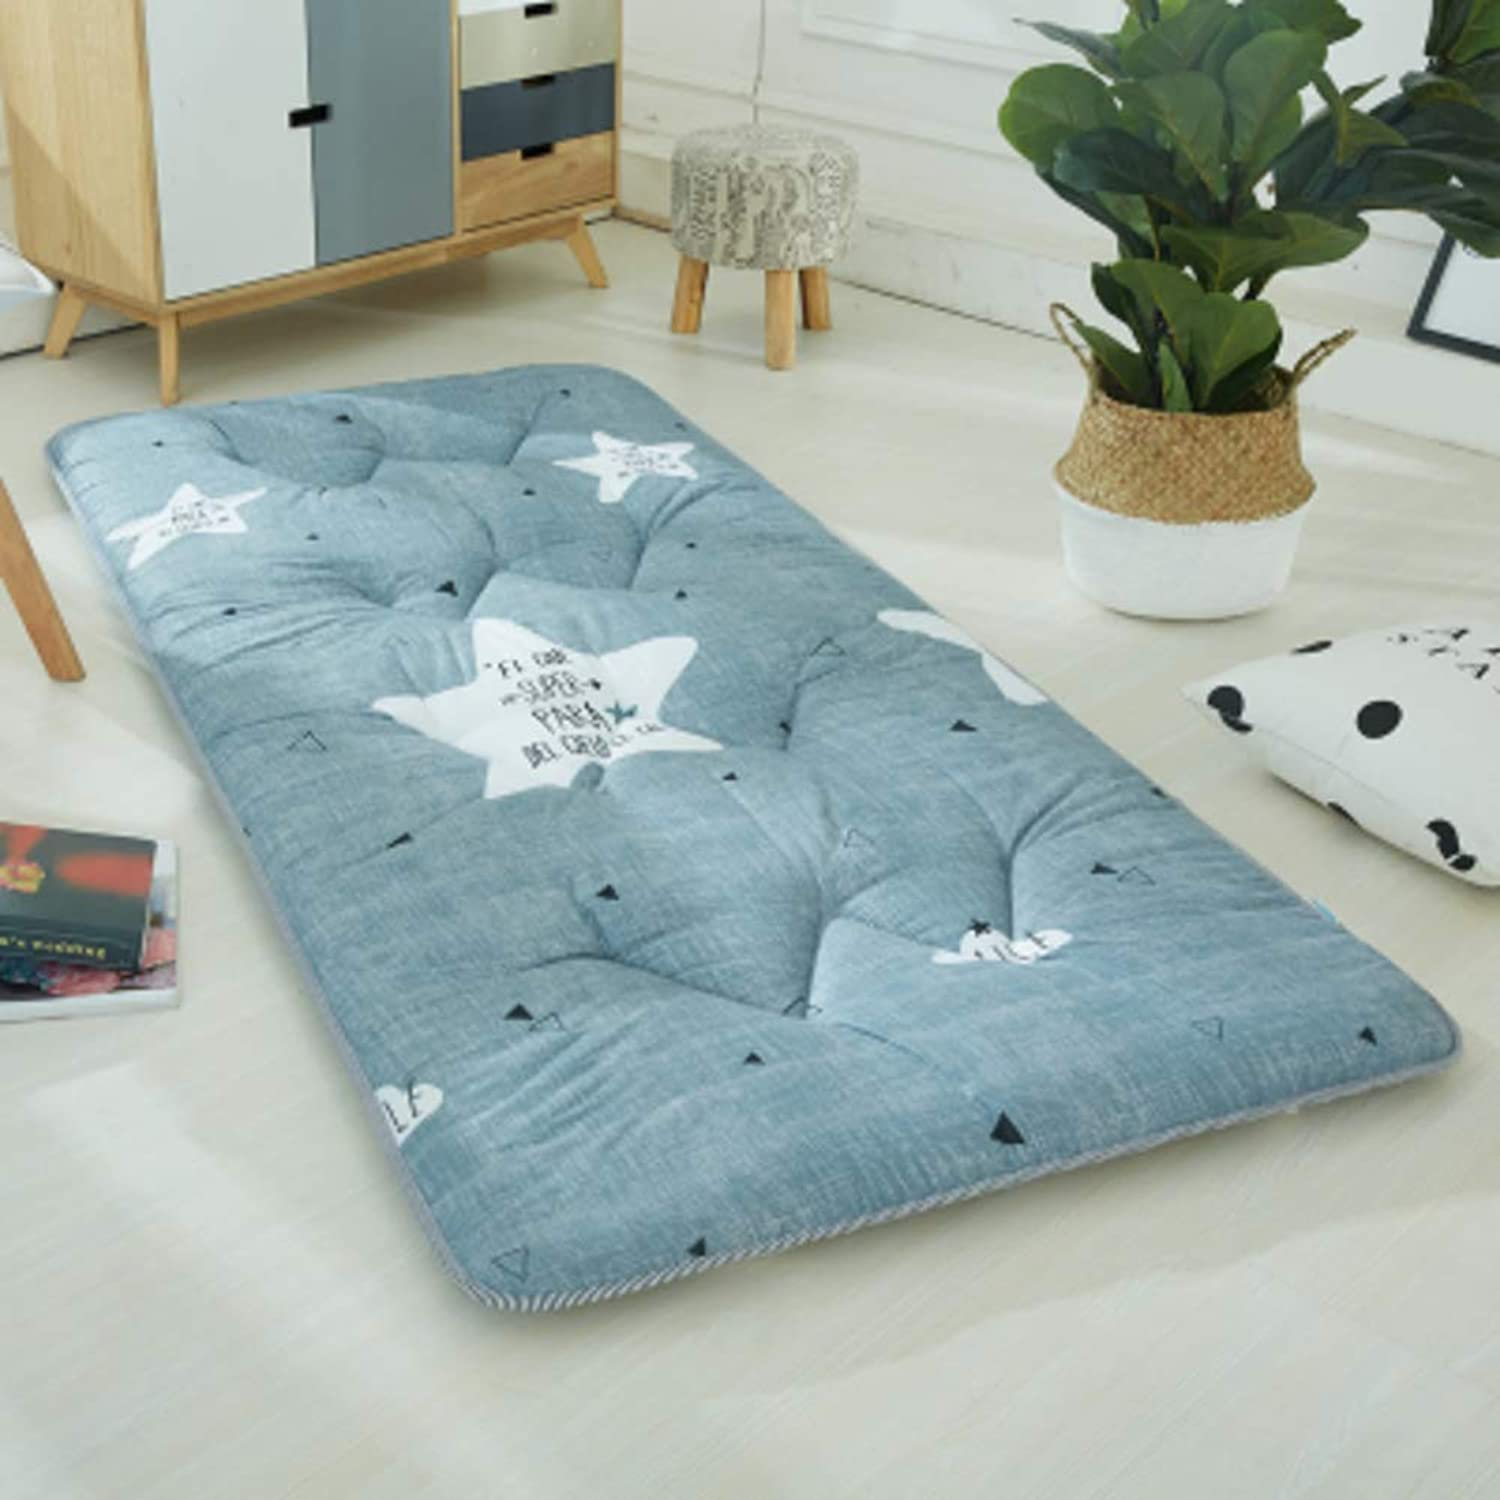 Quilted Fitted Floor Mattress Futon Tatami Mat, Anti-Slip Folding Bed Sleeping Pad Nap for Living Room Dormitory-n 80x190cm(31x75inch)